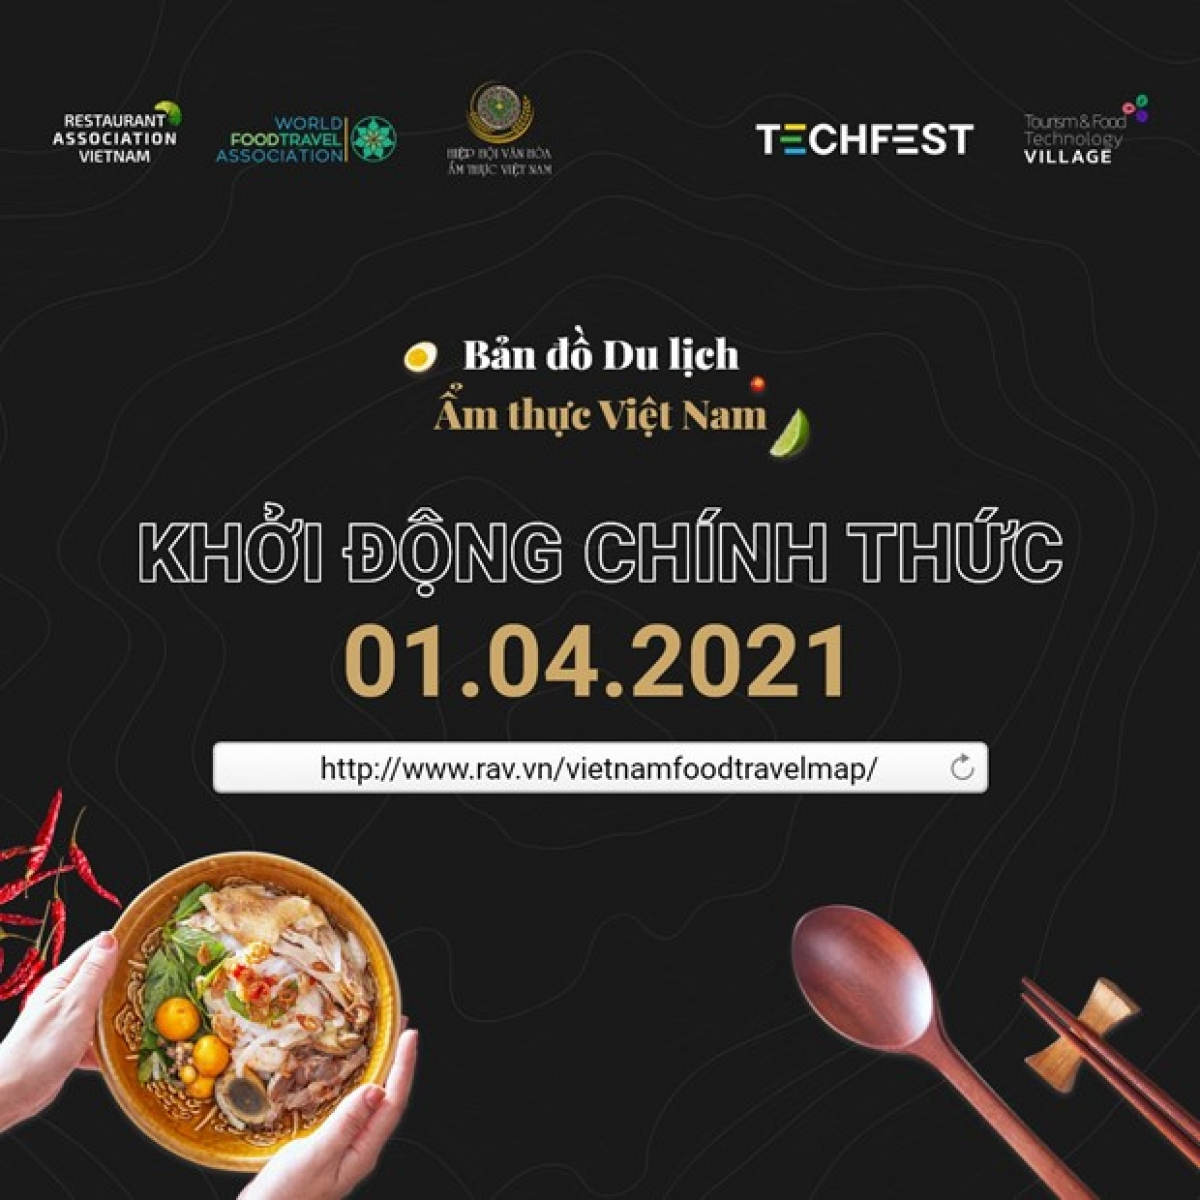 The Vietnam Food Travel Map project has been unveiled (Photo: Facebook of the Restaurant Association of Vietnam)